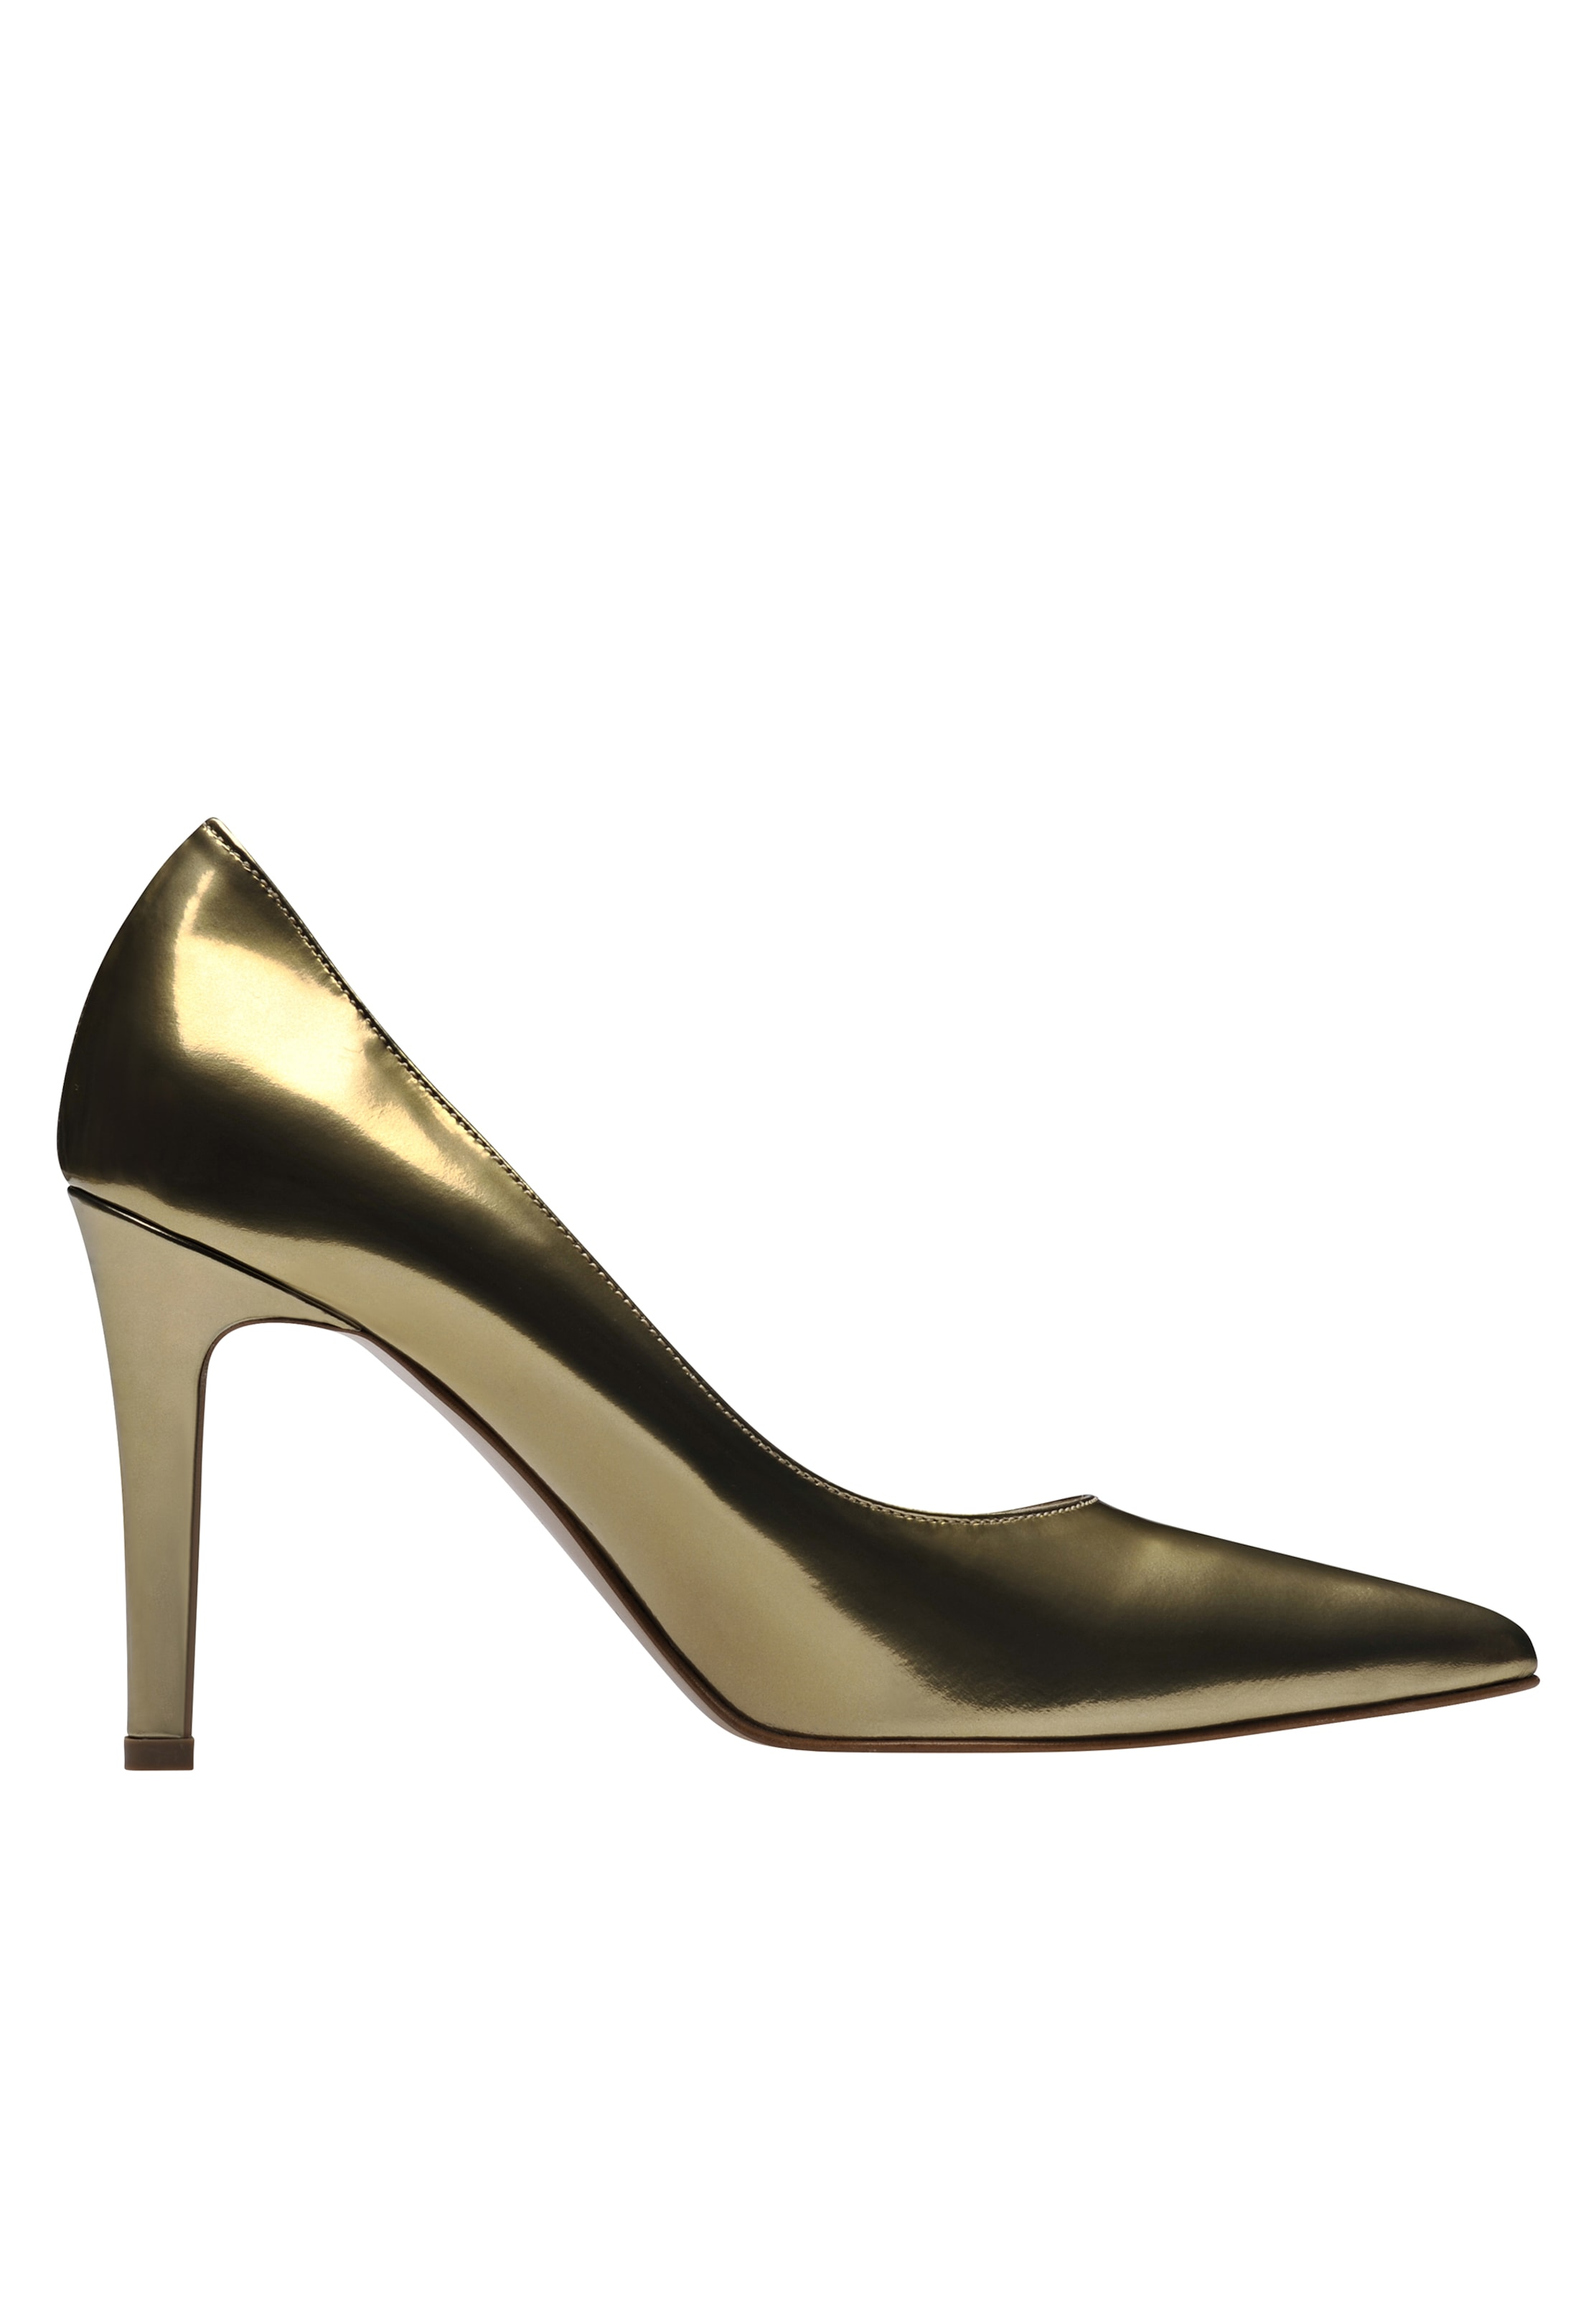 Pumps Gold In Pumps Pumps Evita Gold Evita Evita In Evita Gold Pumps In OTkXiuZP